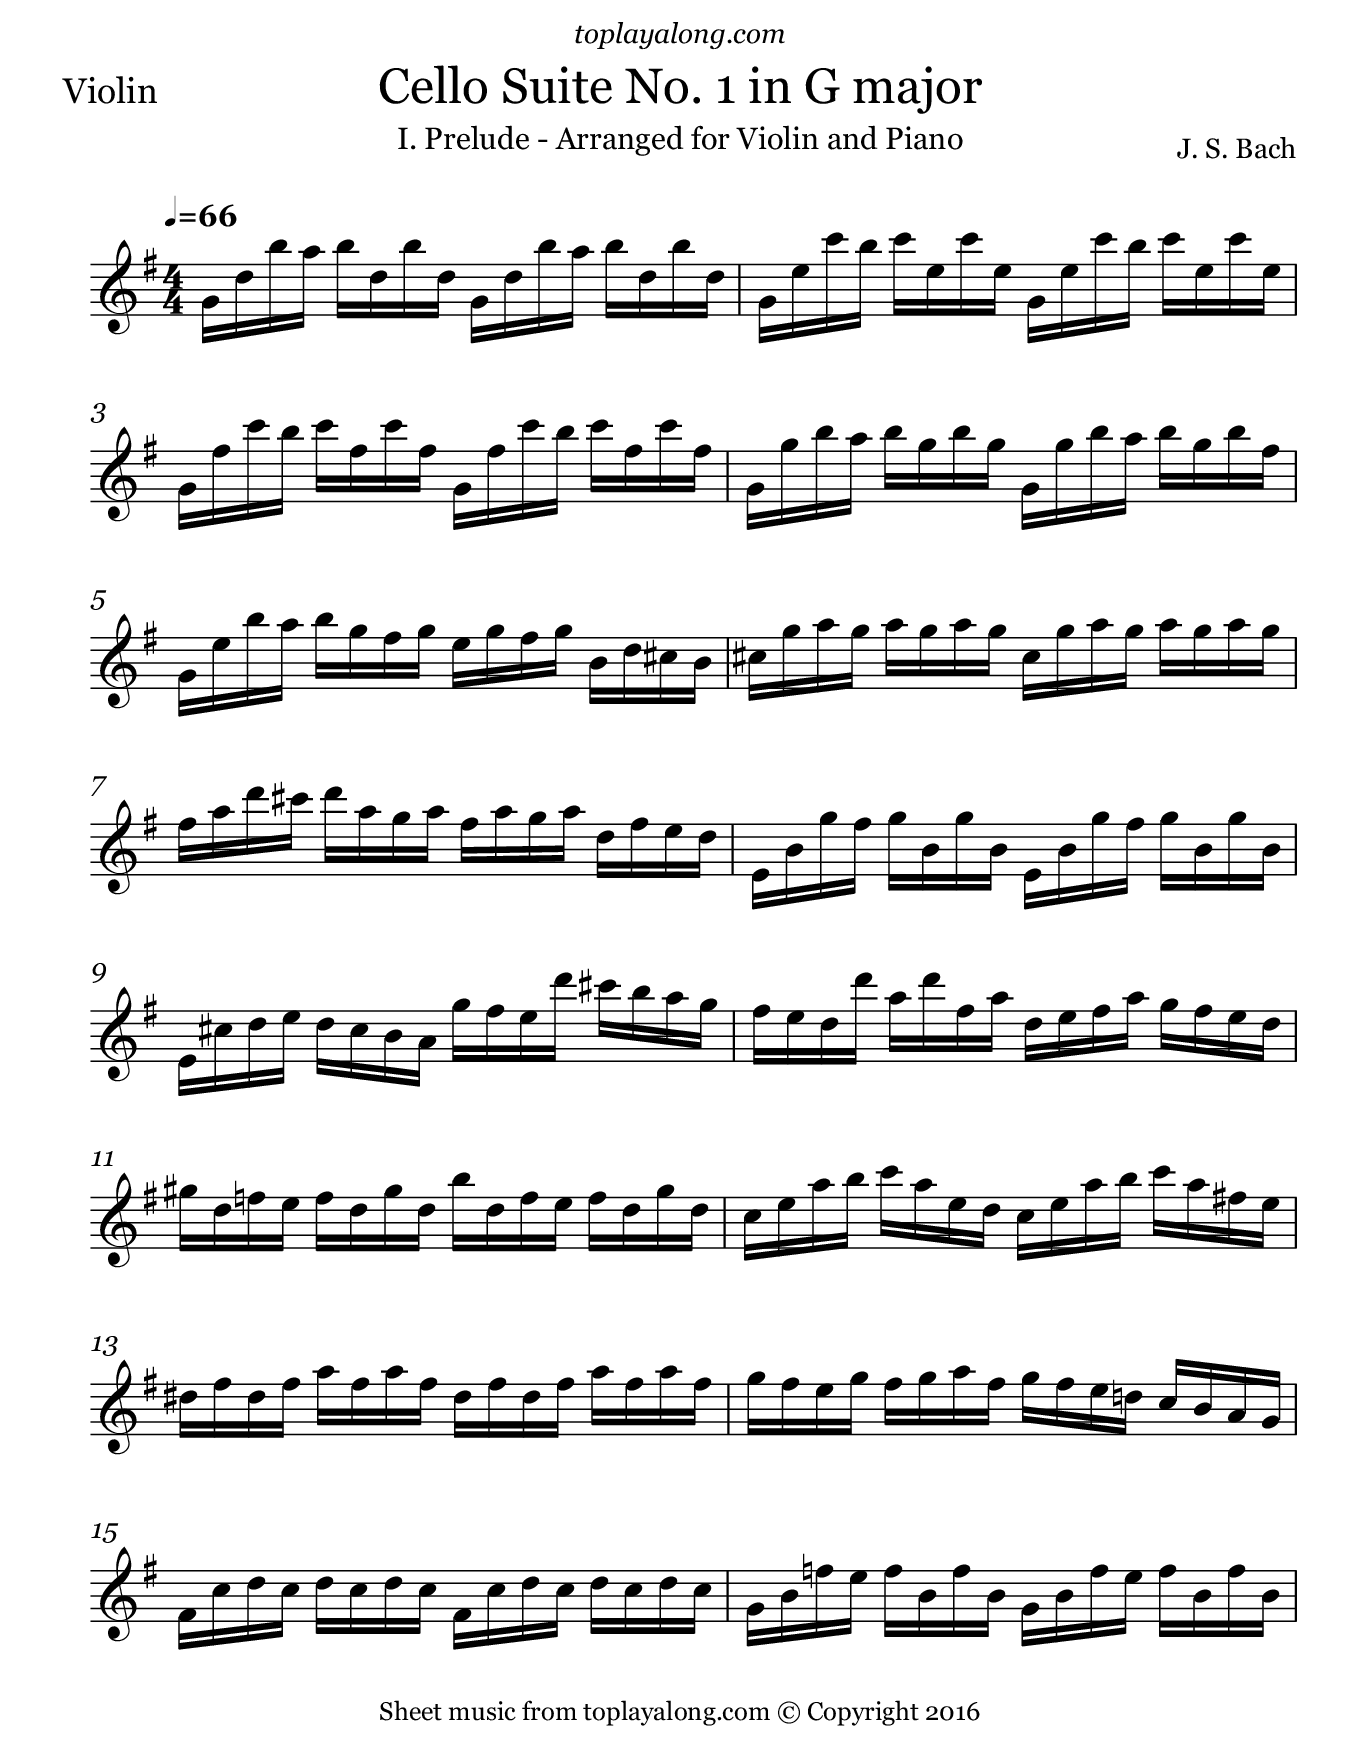 Cello Suite No. 1 in G (BWV 1007) by J. S. Bach. Sheet music for Violin, page 1.